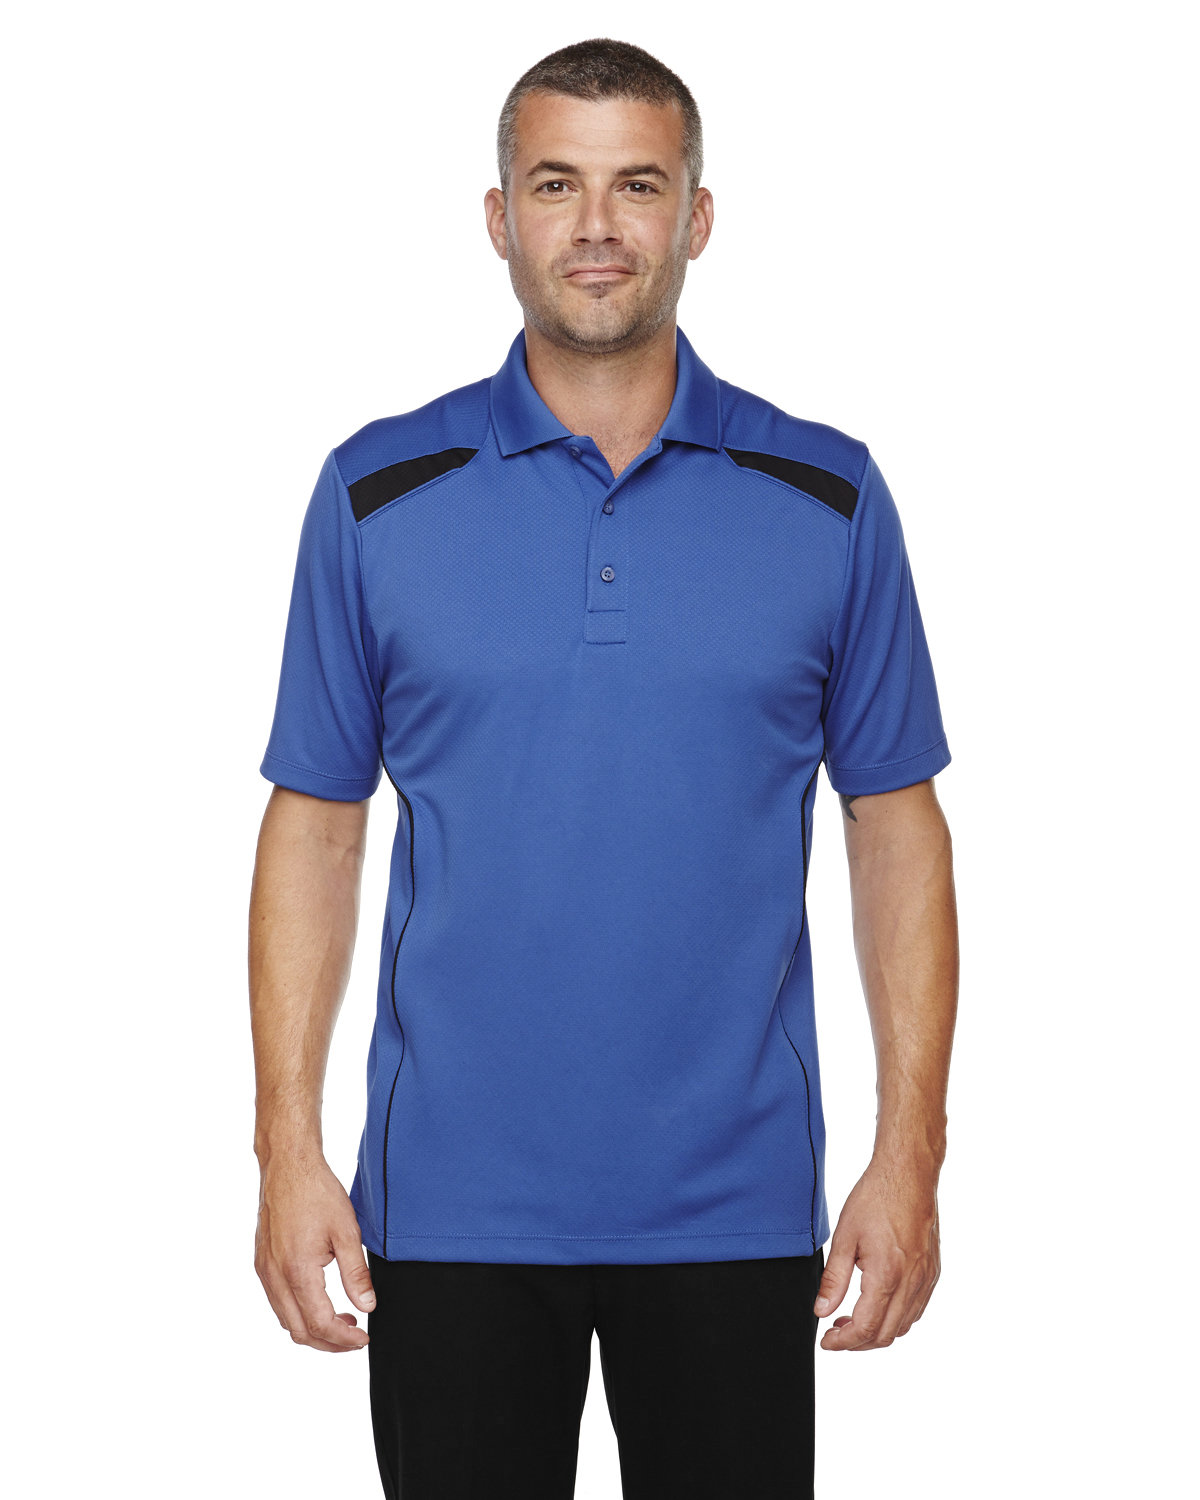 Extreme Men's Eperformance™ Tempo Recycled Polyester Performance Textured Polo NAUTICAL BLUE